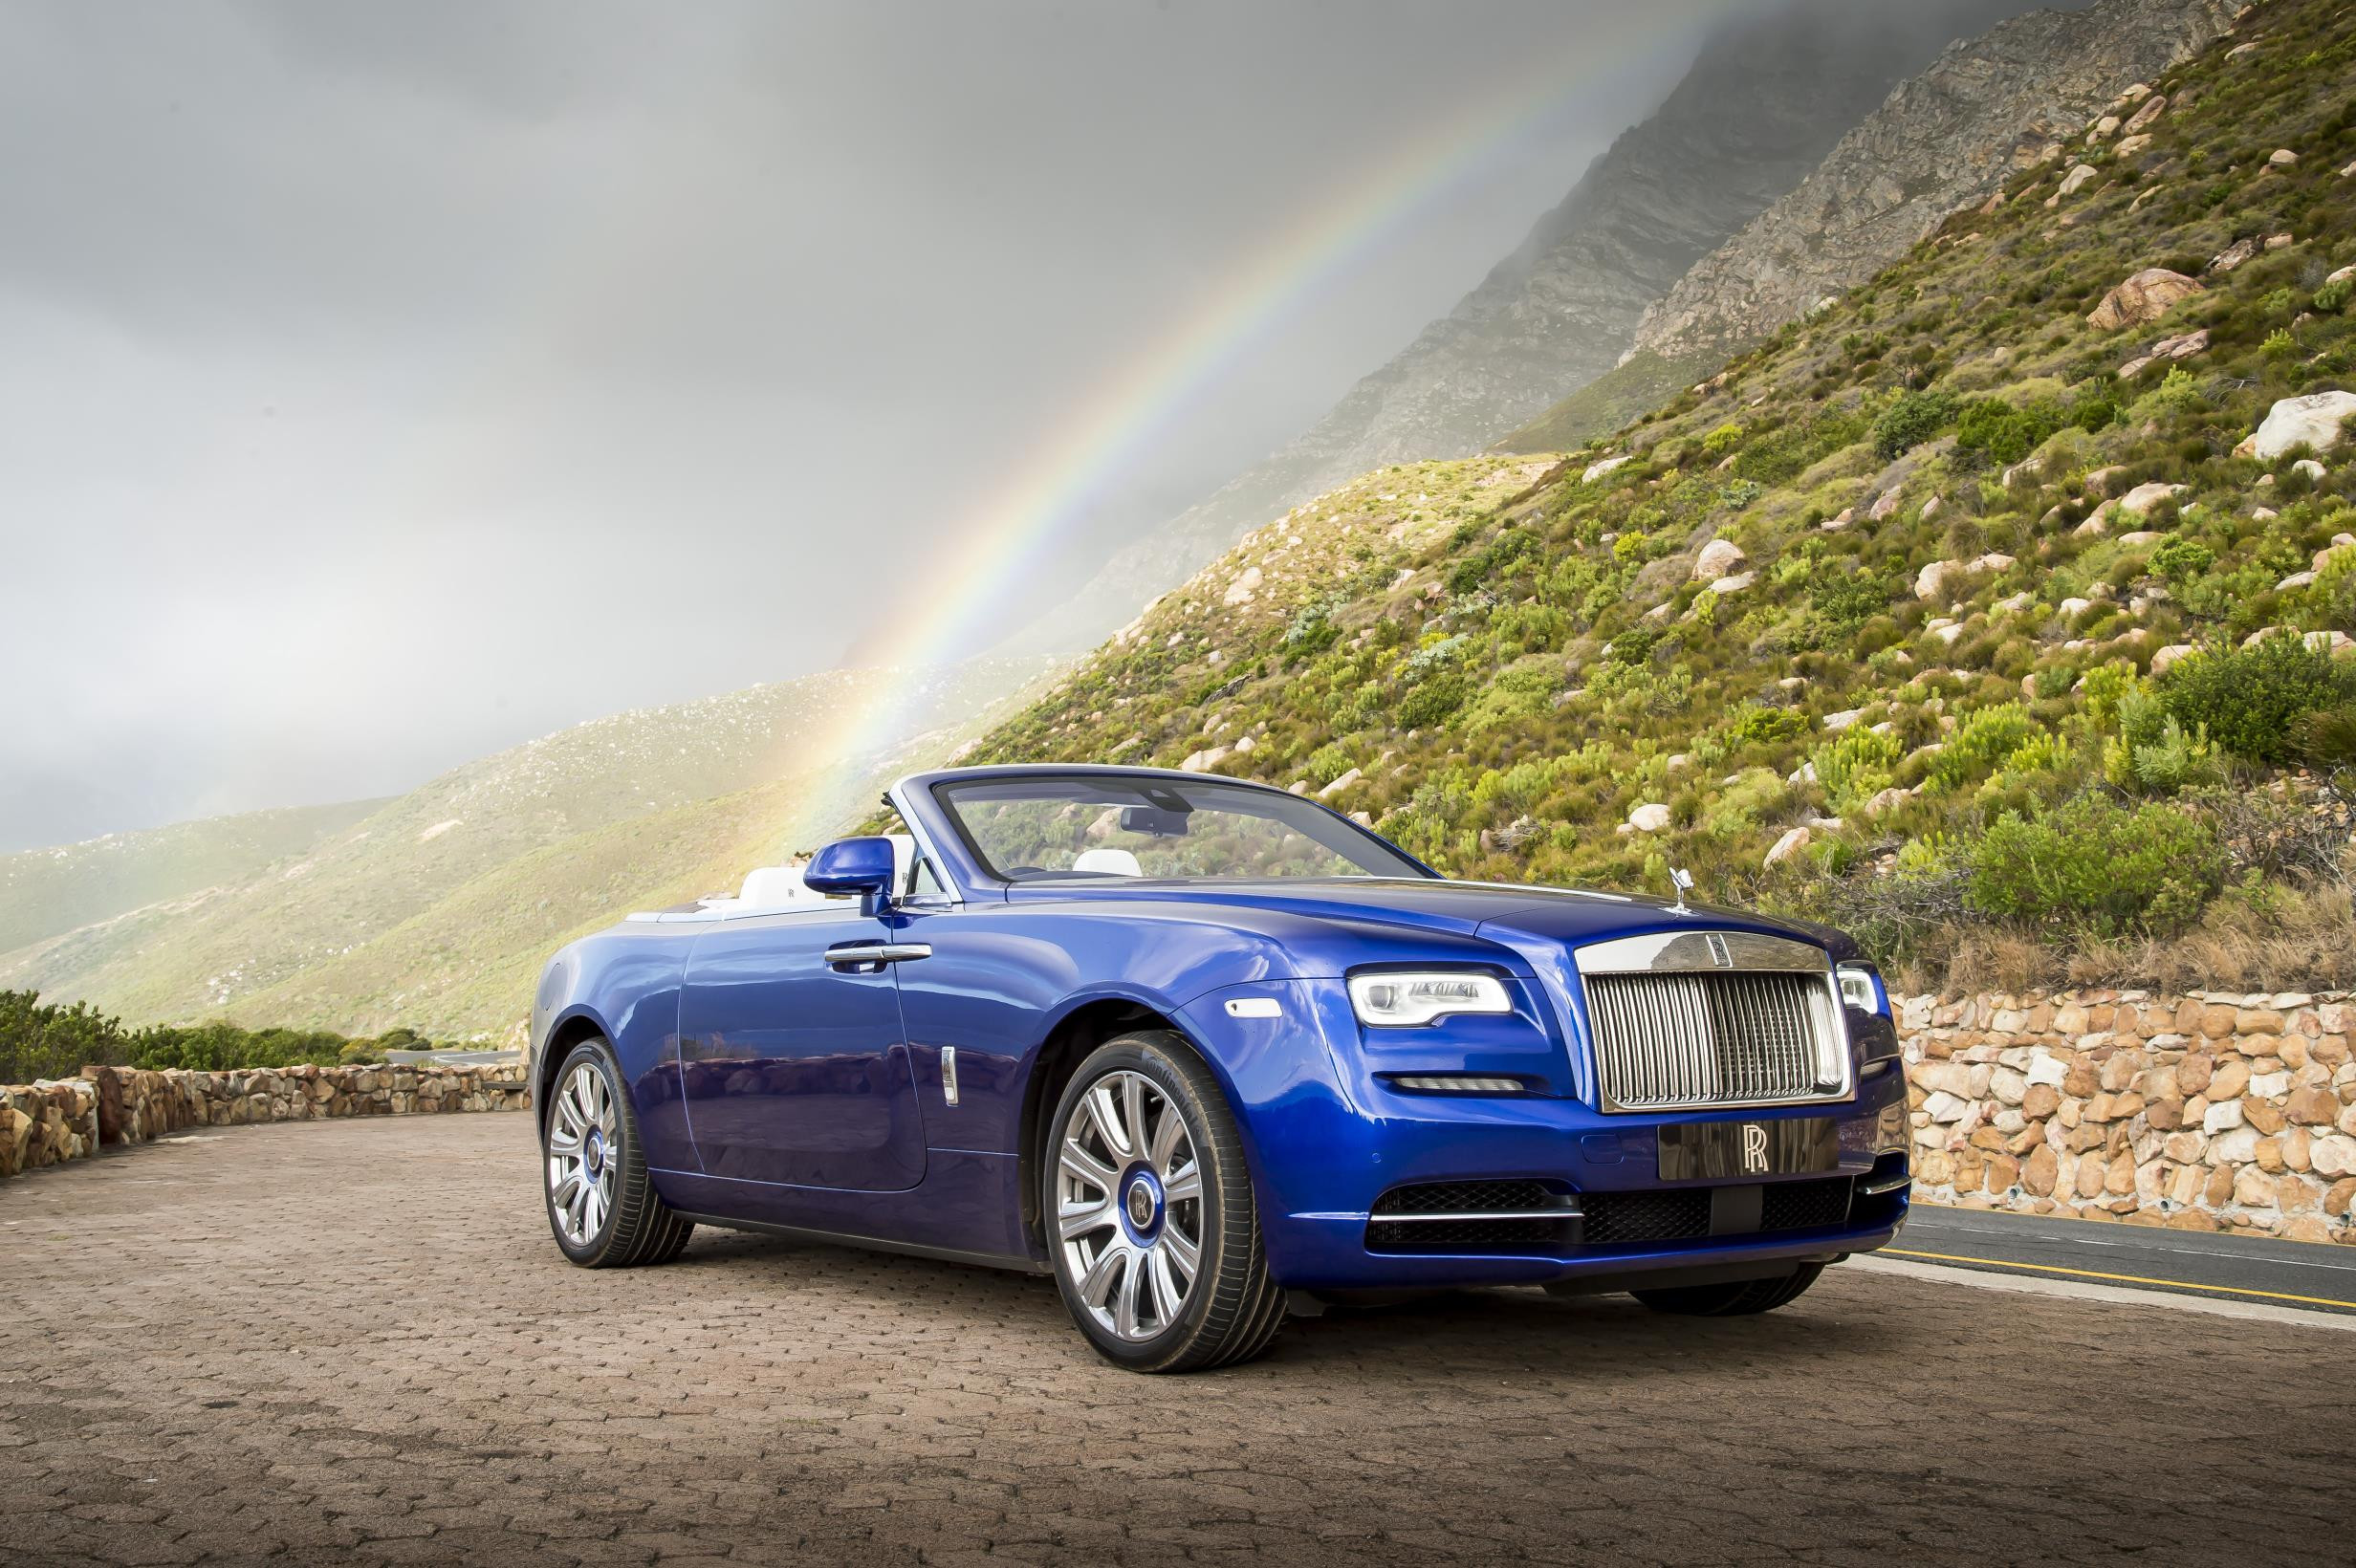 Brigjt blue metallic Rolls Royce Dawn convertible parked with a rainbow behind it